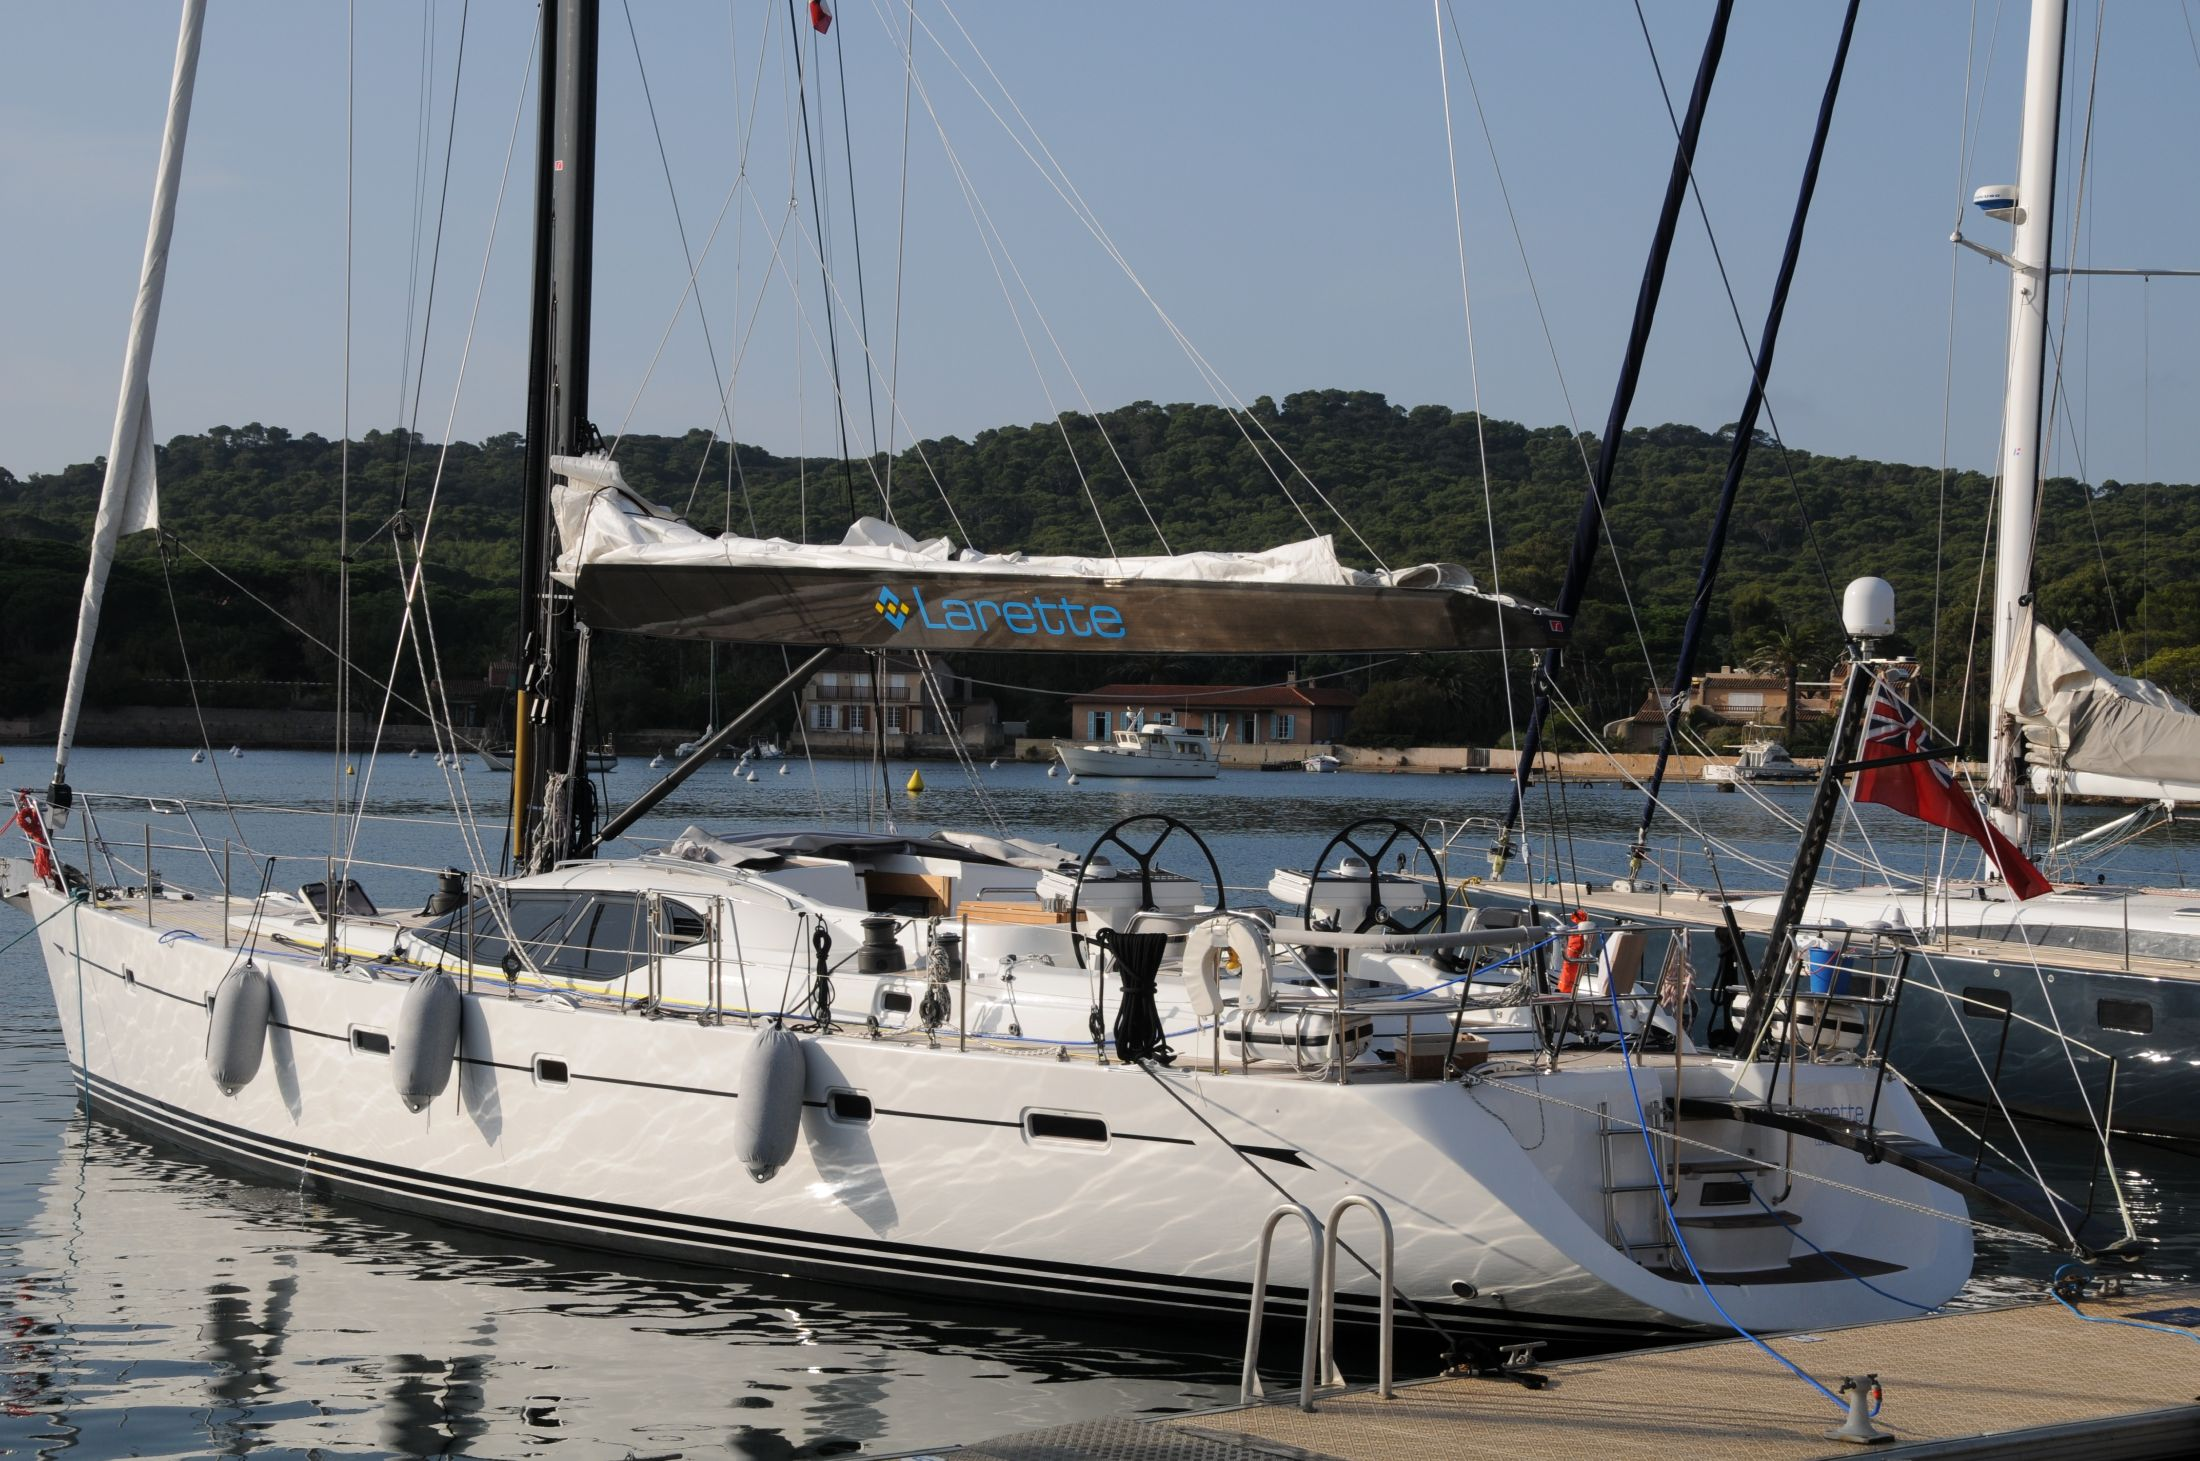 2008 Oyster 655 Sail Boat For Sale - www.yachtworld.com